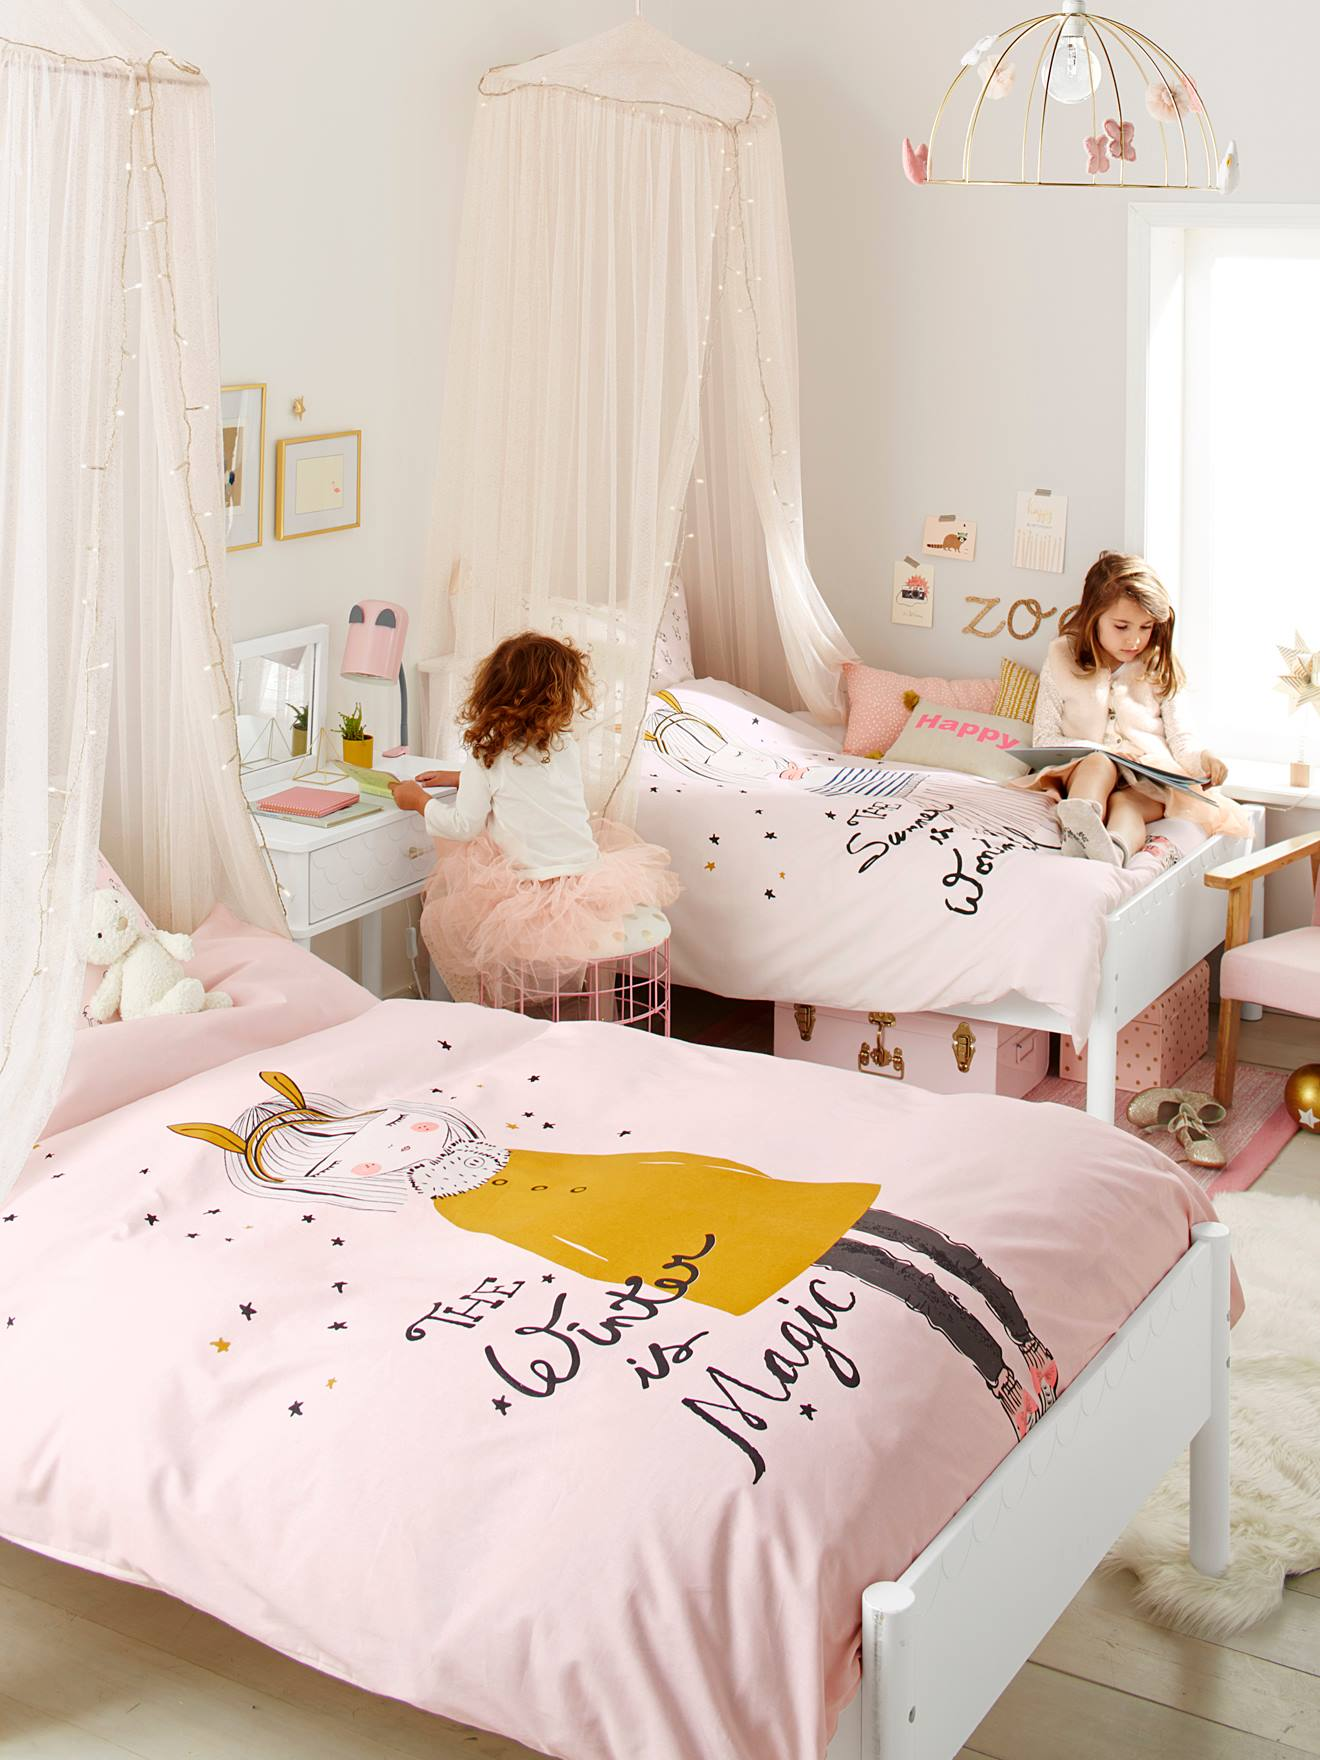 Interiors Ciel De Lit bed canopy set with glitter - pink light solid with design, bedding & decor